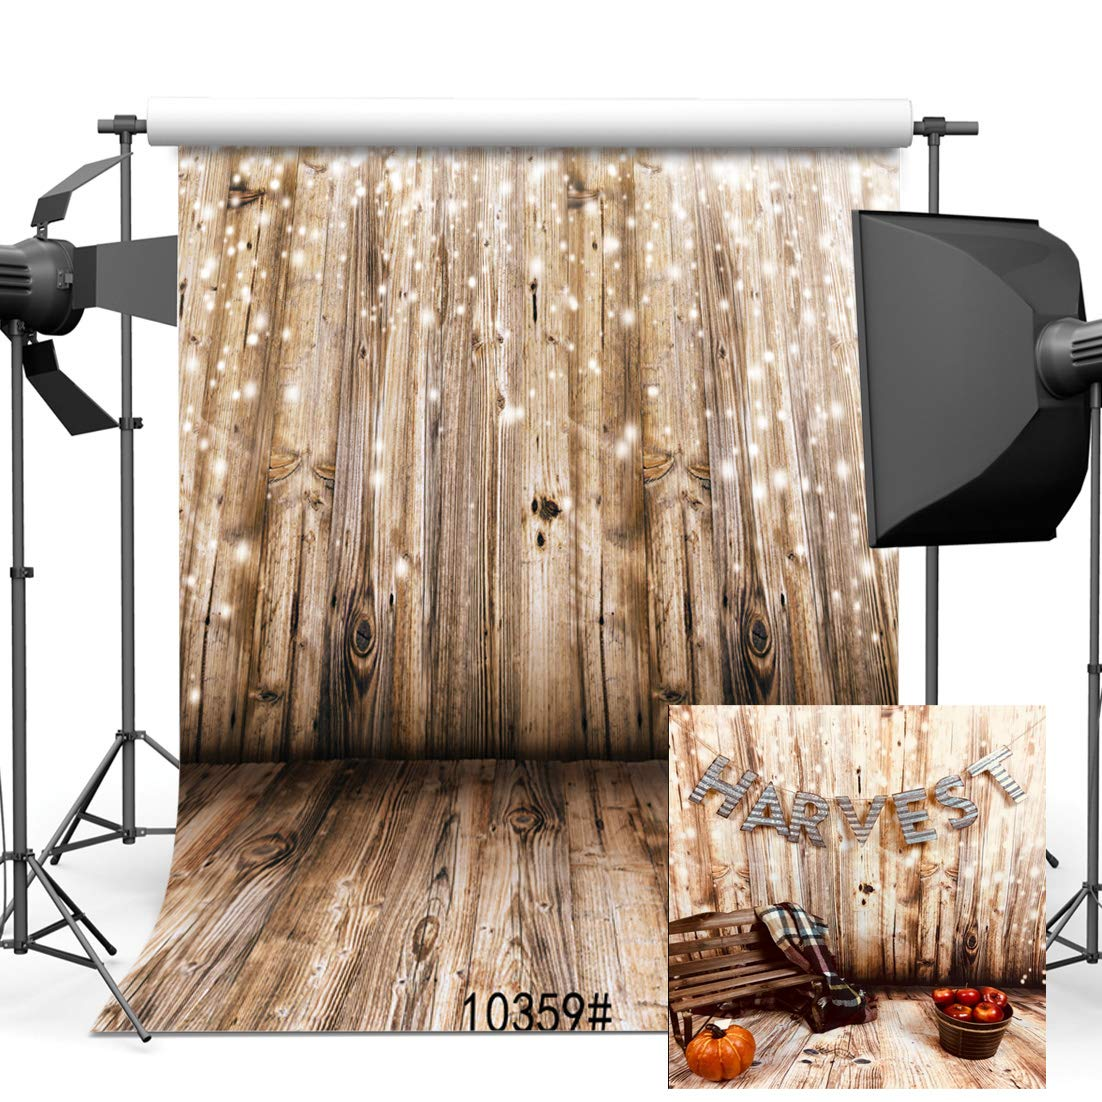 SJOLOON 10x10ft Rustic Backdrop Vinyl Photographer Background Wedding Wood Photography Backdrops for Photographers Studio Props 10359 by SJOLOON (Image #2)